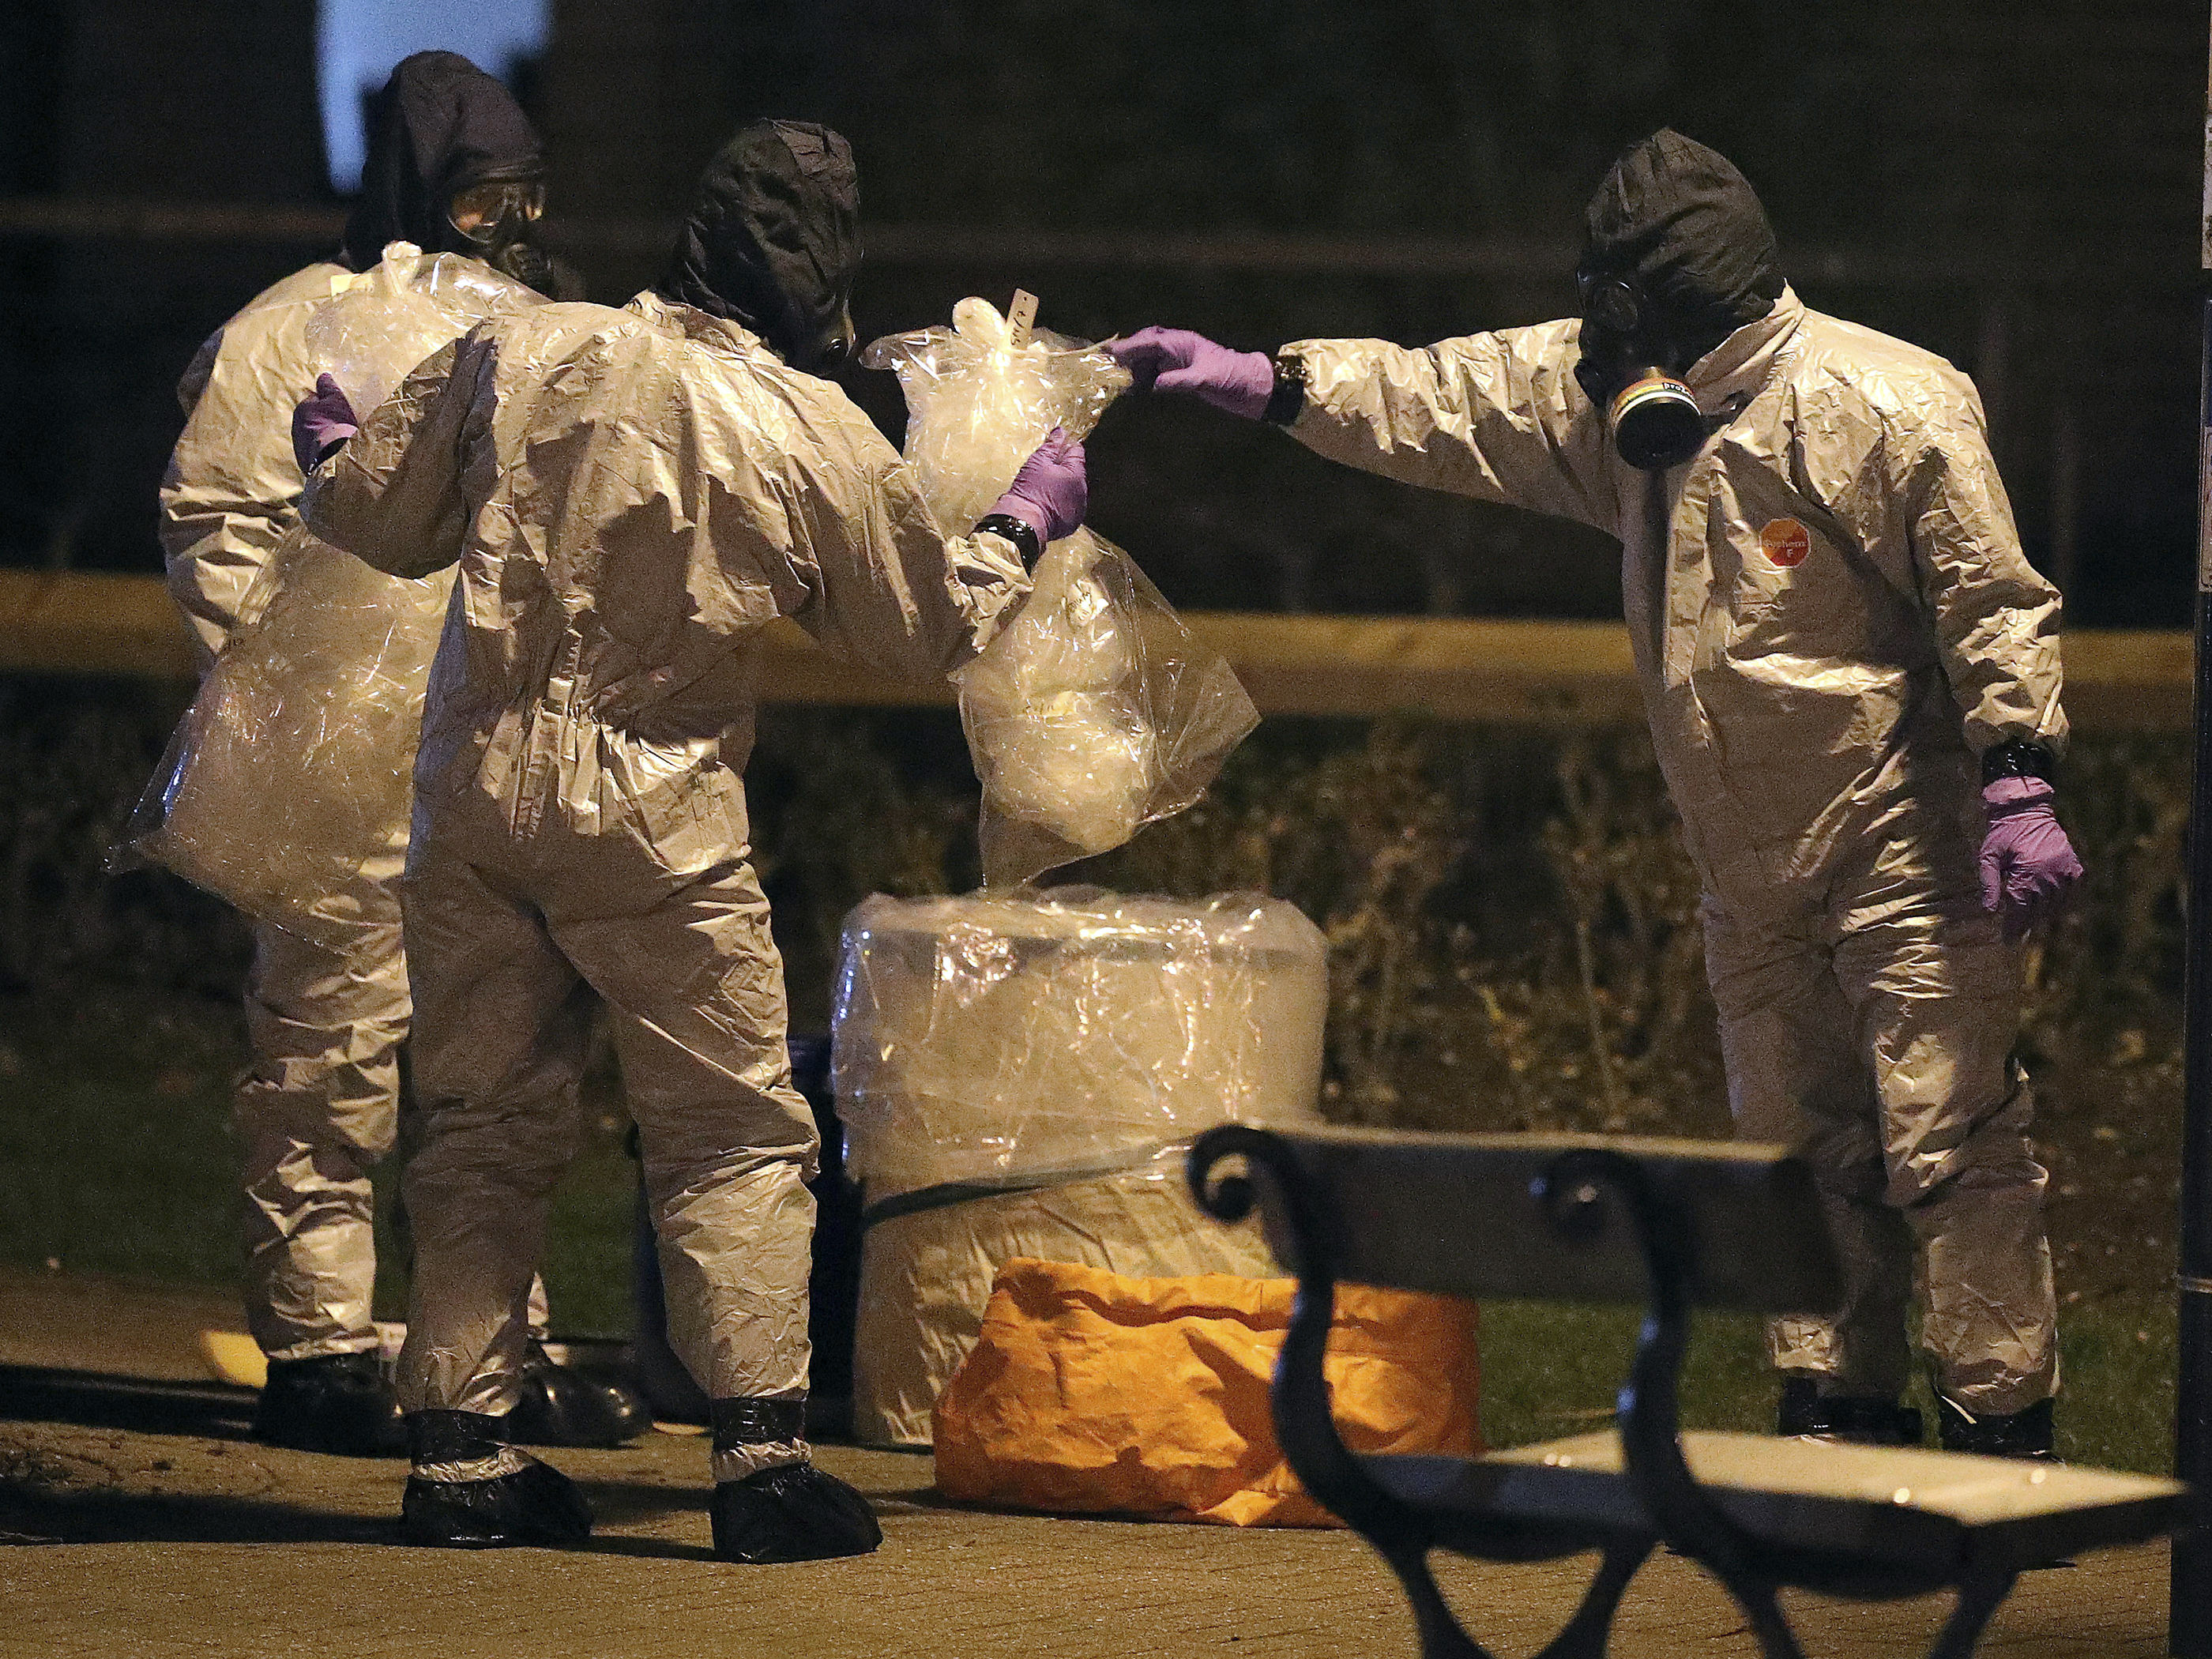 Investigators in protective suits work at the scene in the Maltings shopping center in Salisbury, England, on Tuesday.